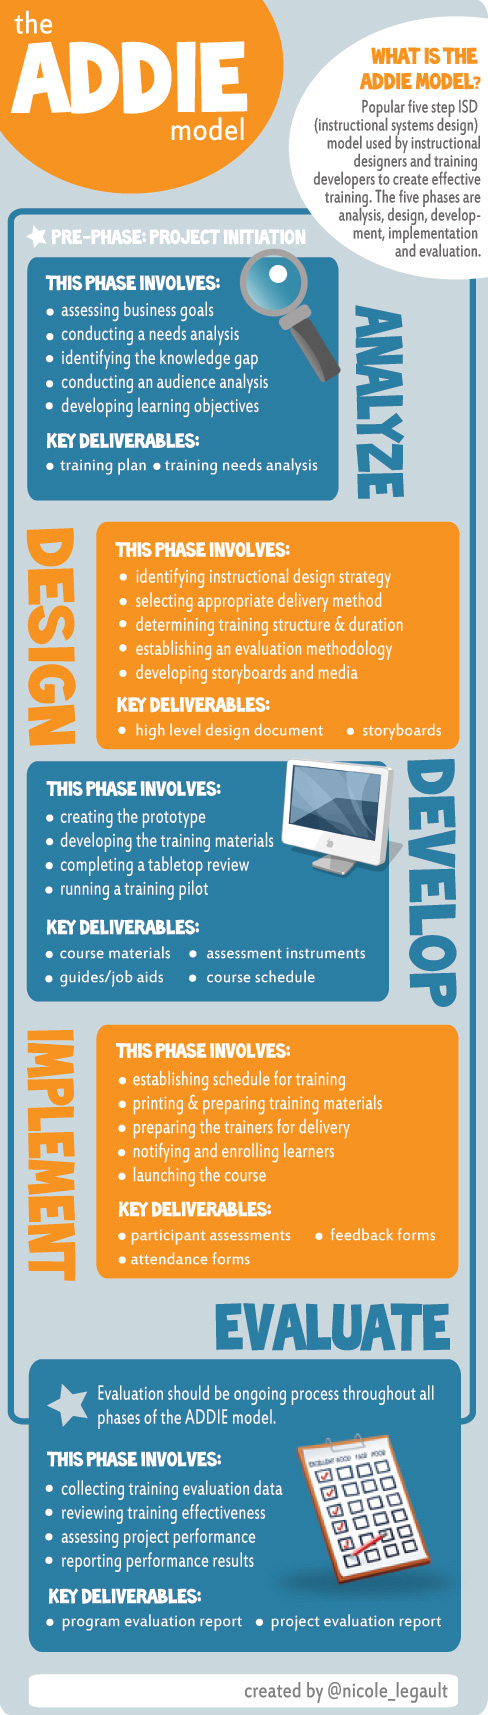 Infographic The Addie Model Nicole Legault